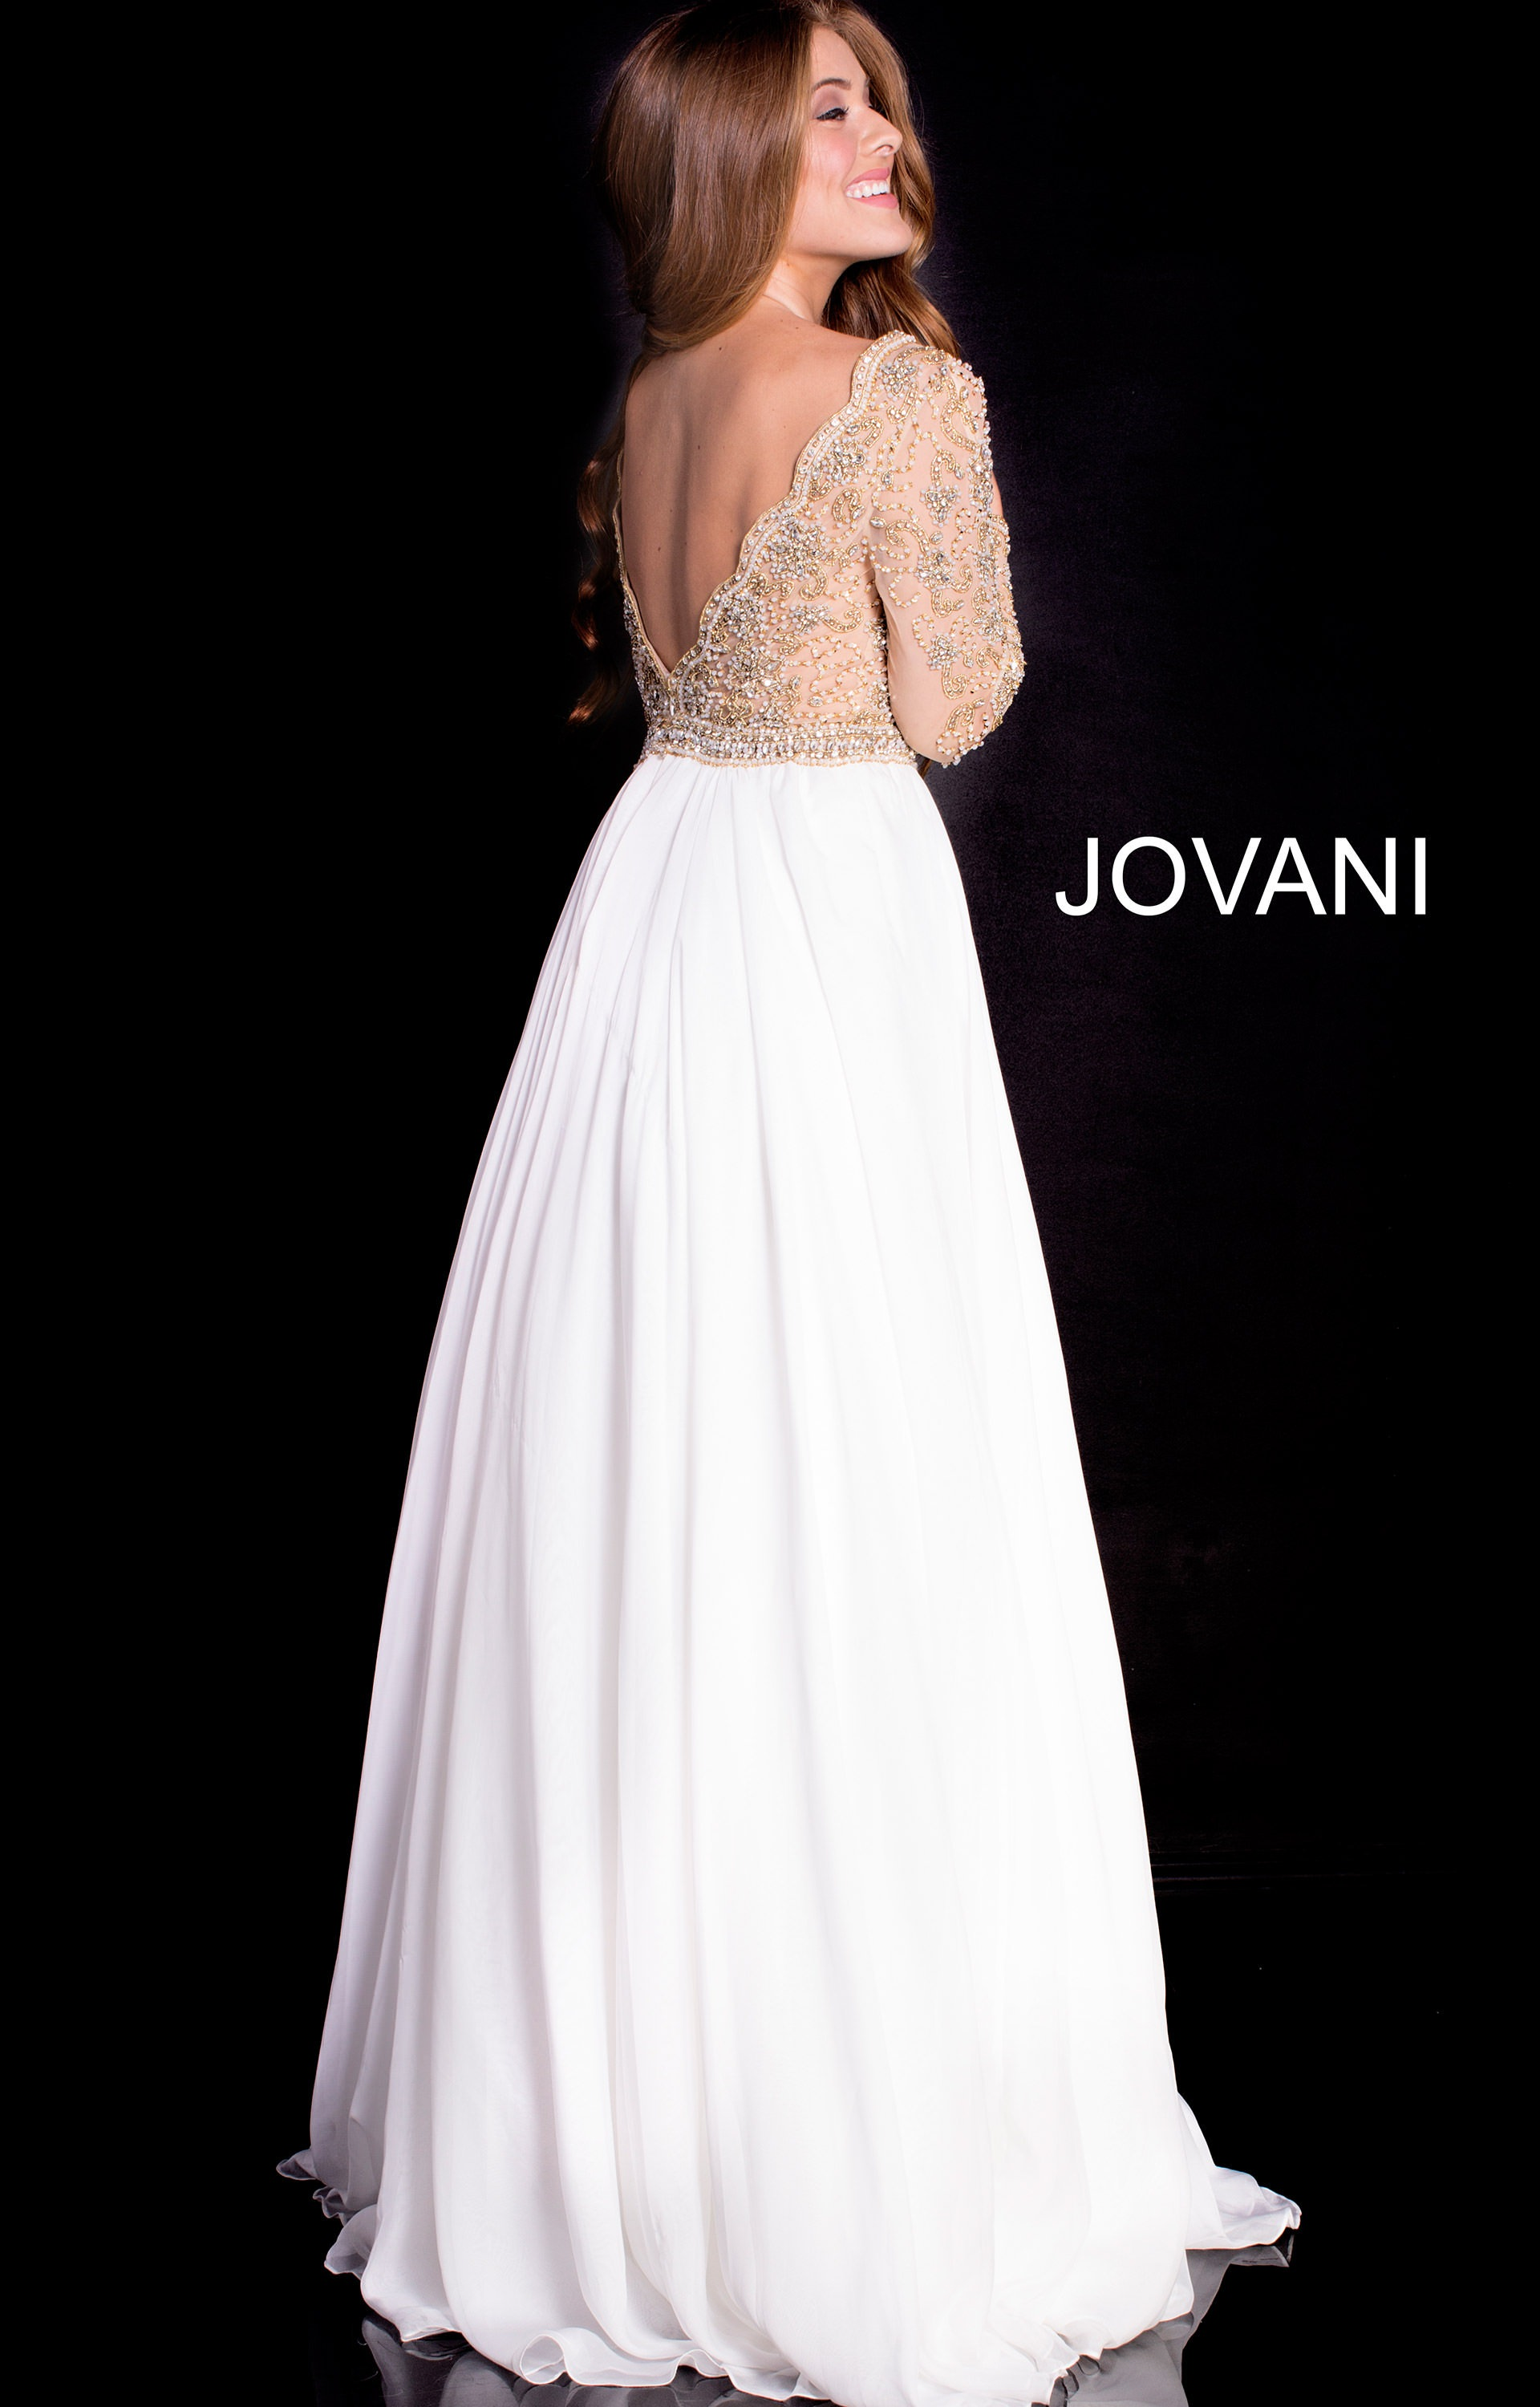 Jovani 55207 - Beaded Long Sleeve A-Line Gown Prom Dress